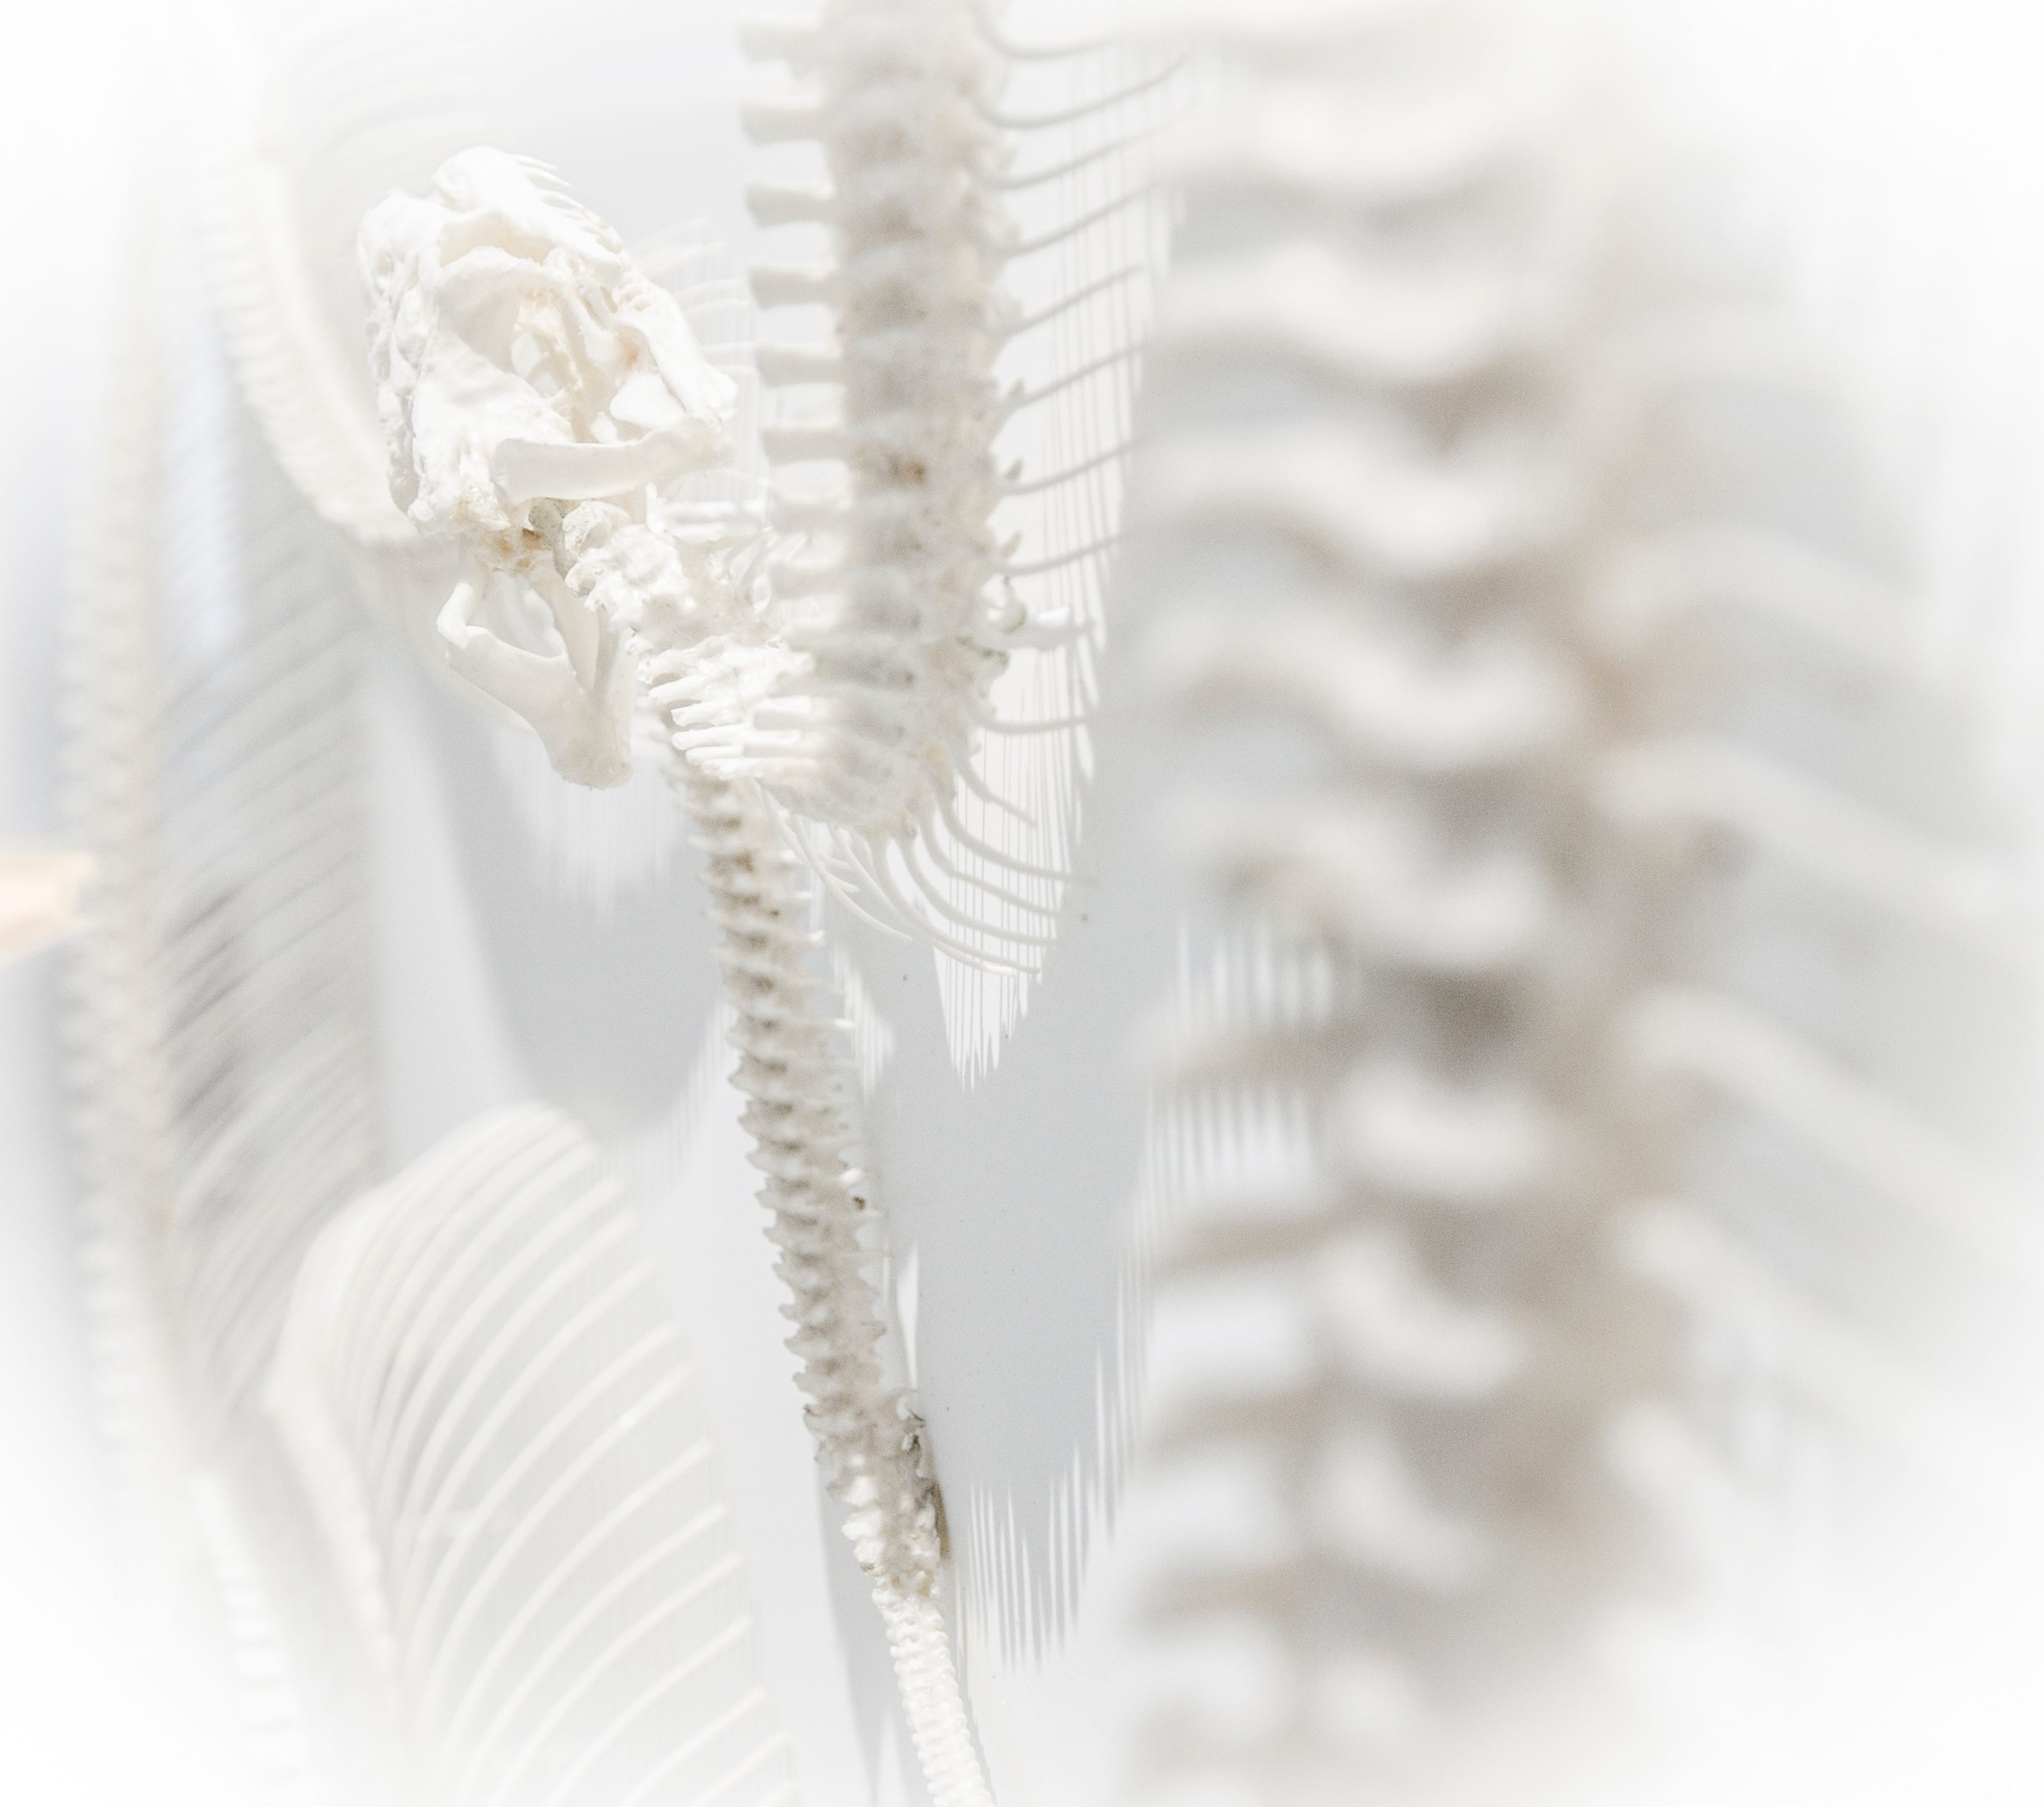 Laser Spine Institutes Closes its Doors Amid Chapter 11 Bankruptcy